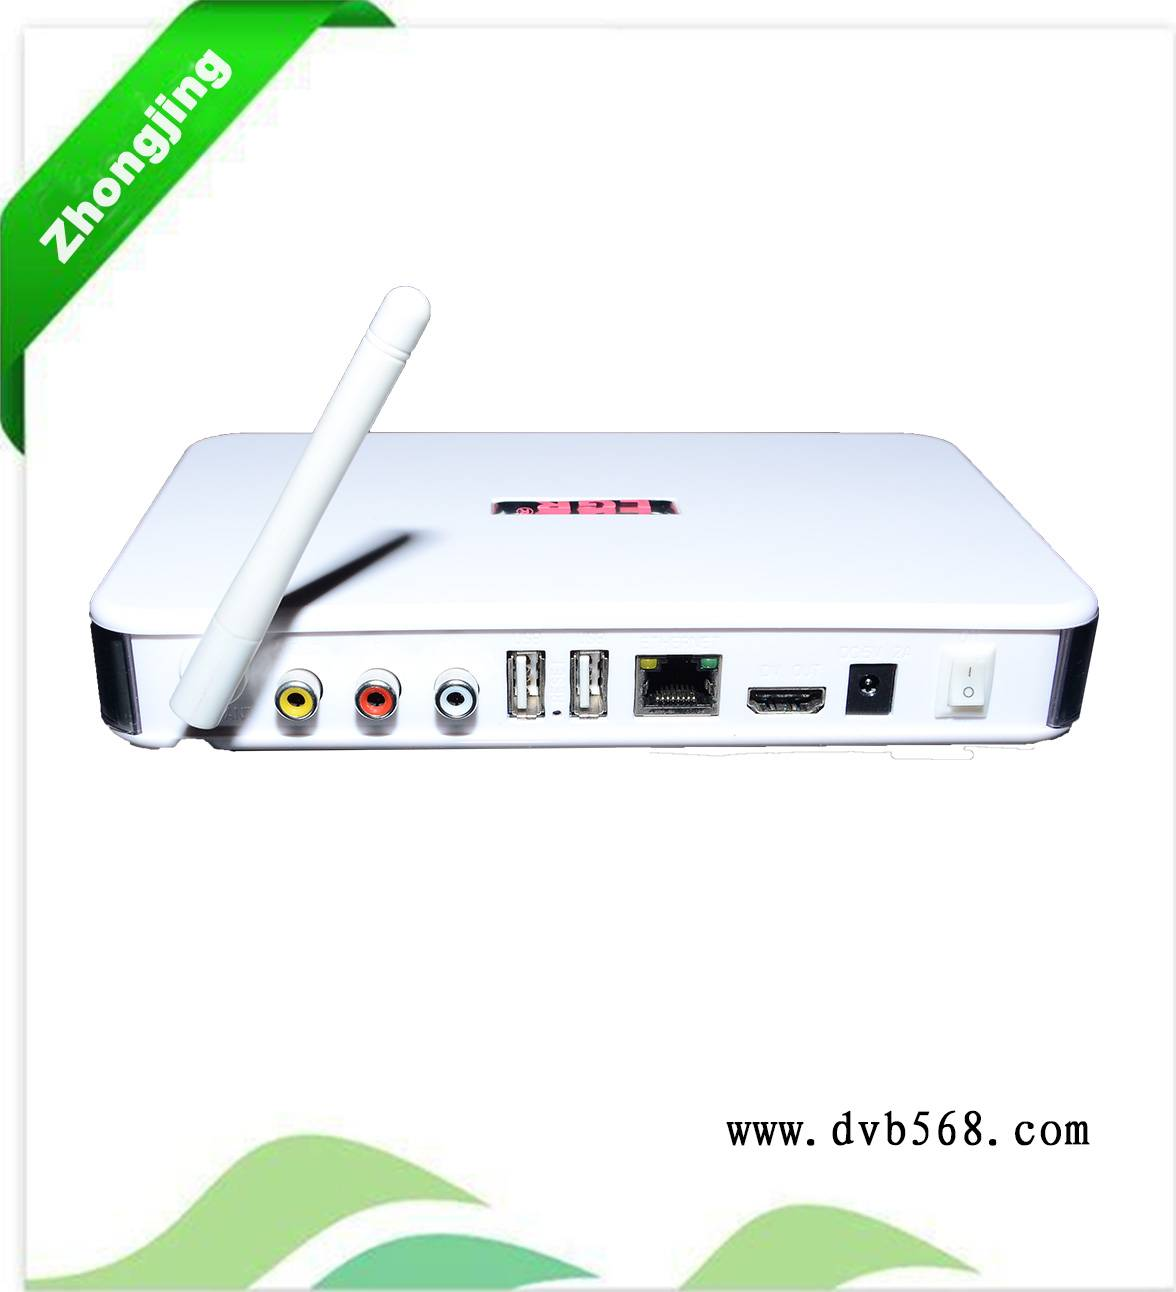 Hot Selling!!! IPTV LGR V8 Wifi Receiver Support YOUTBUE